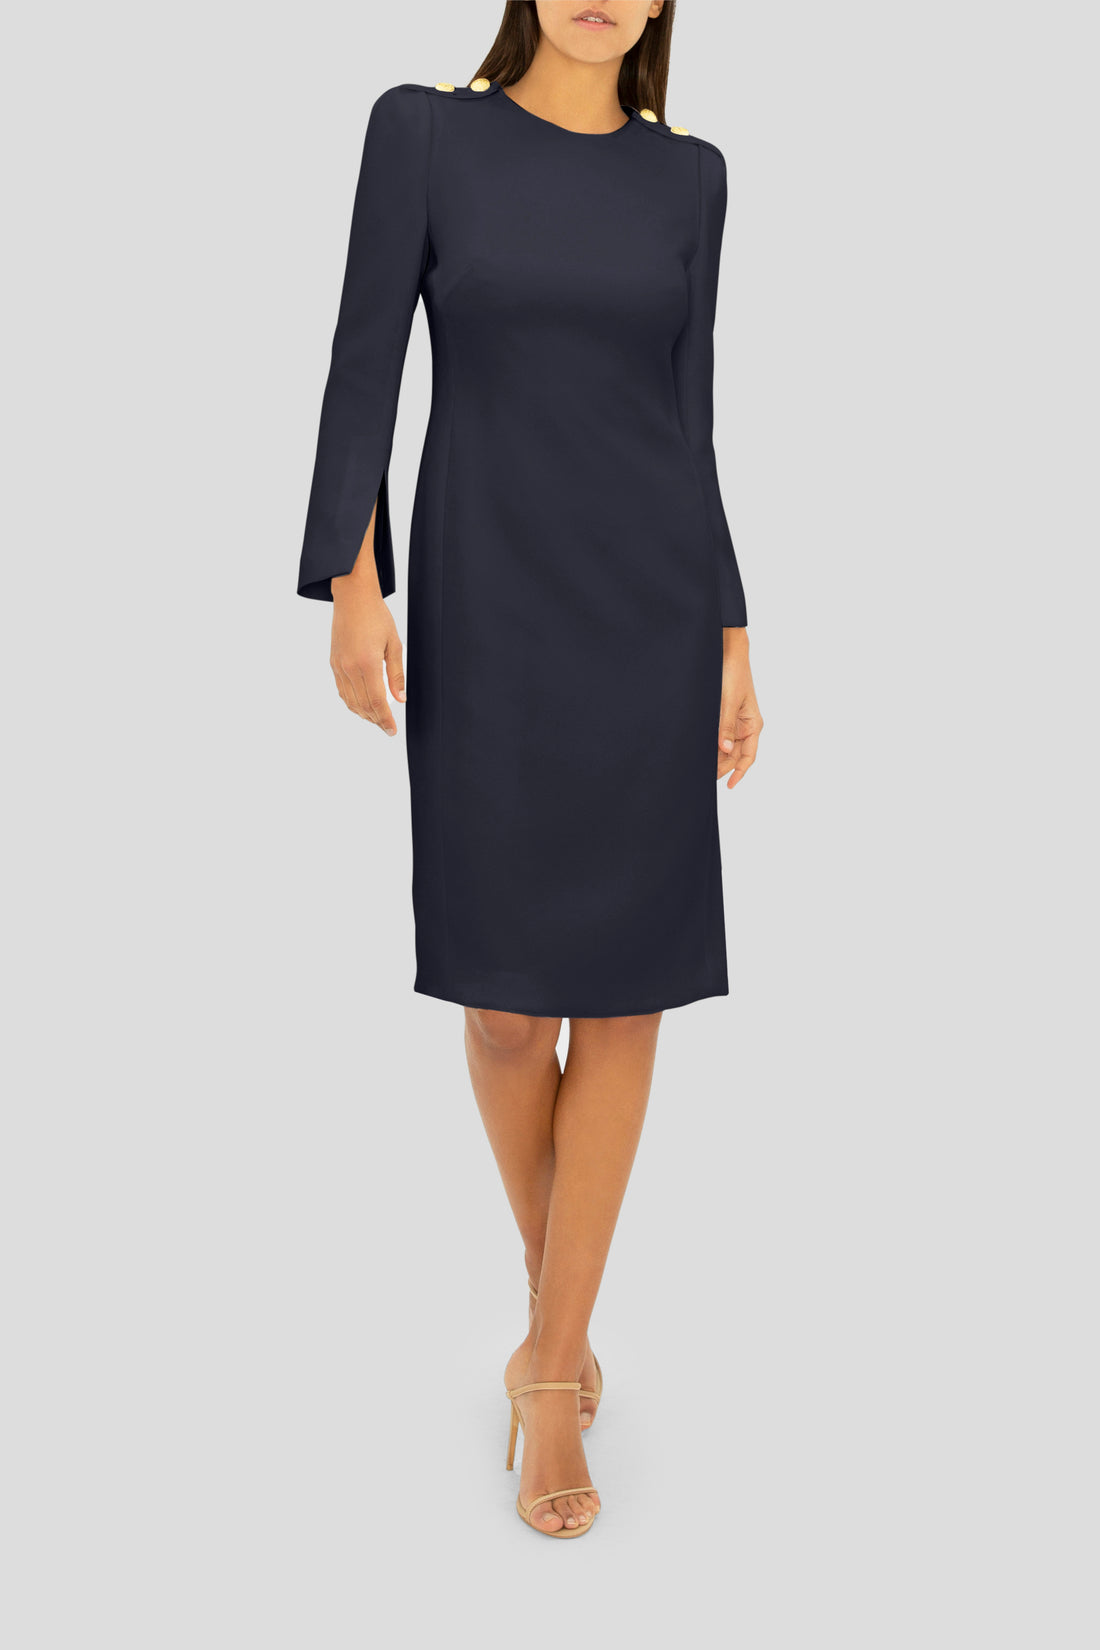 THE NAVY ELEGANCE DRESS